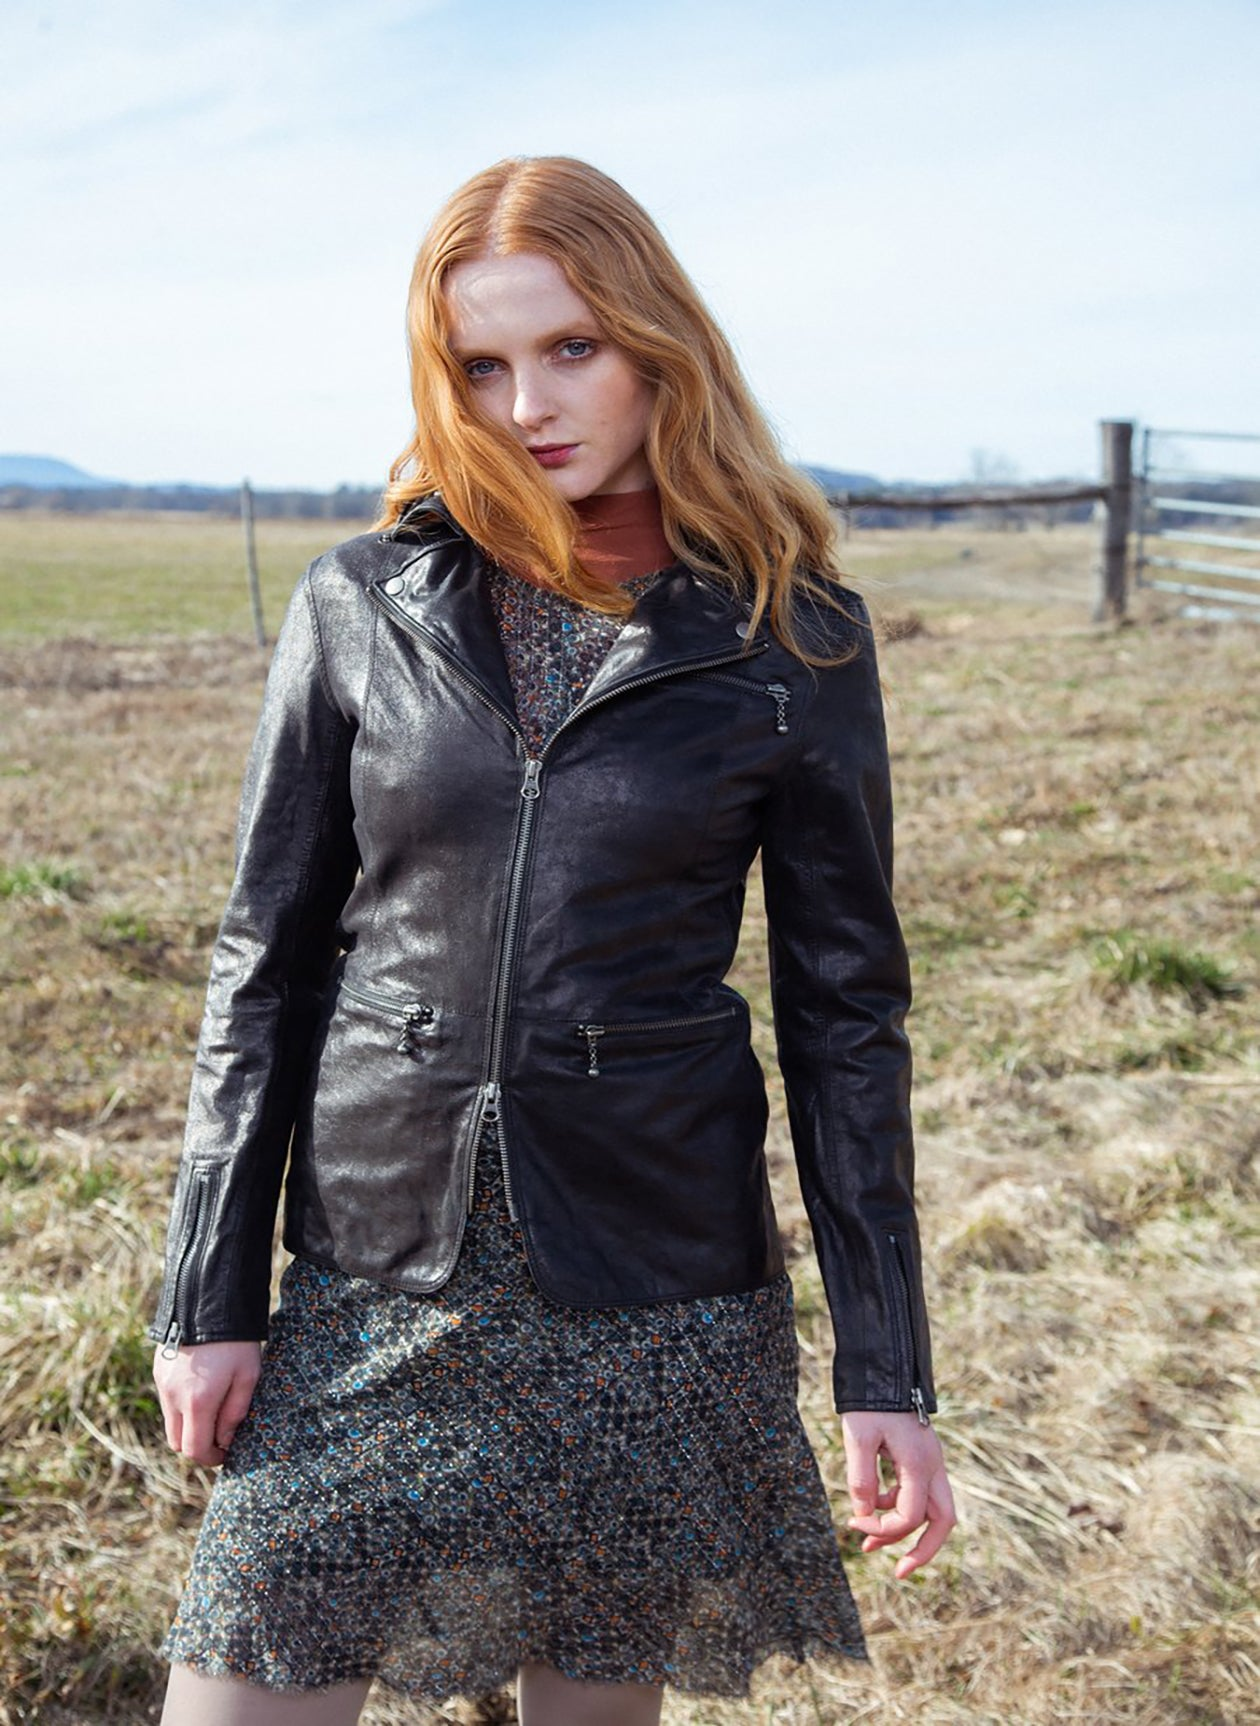 NICOLE NOVELTY LEATHER JACKET - BLACK SHIMMER